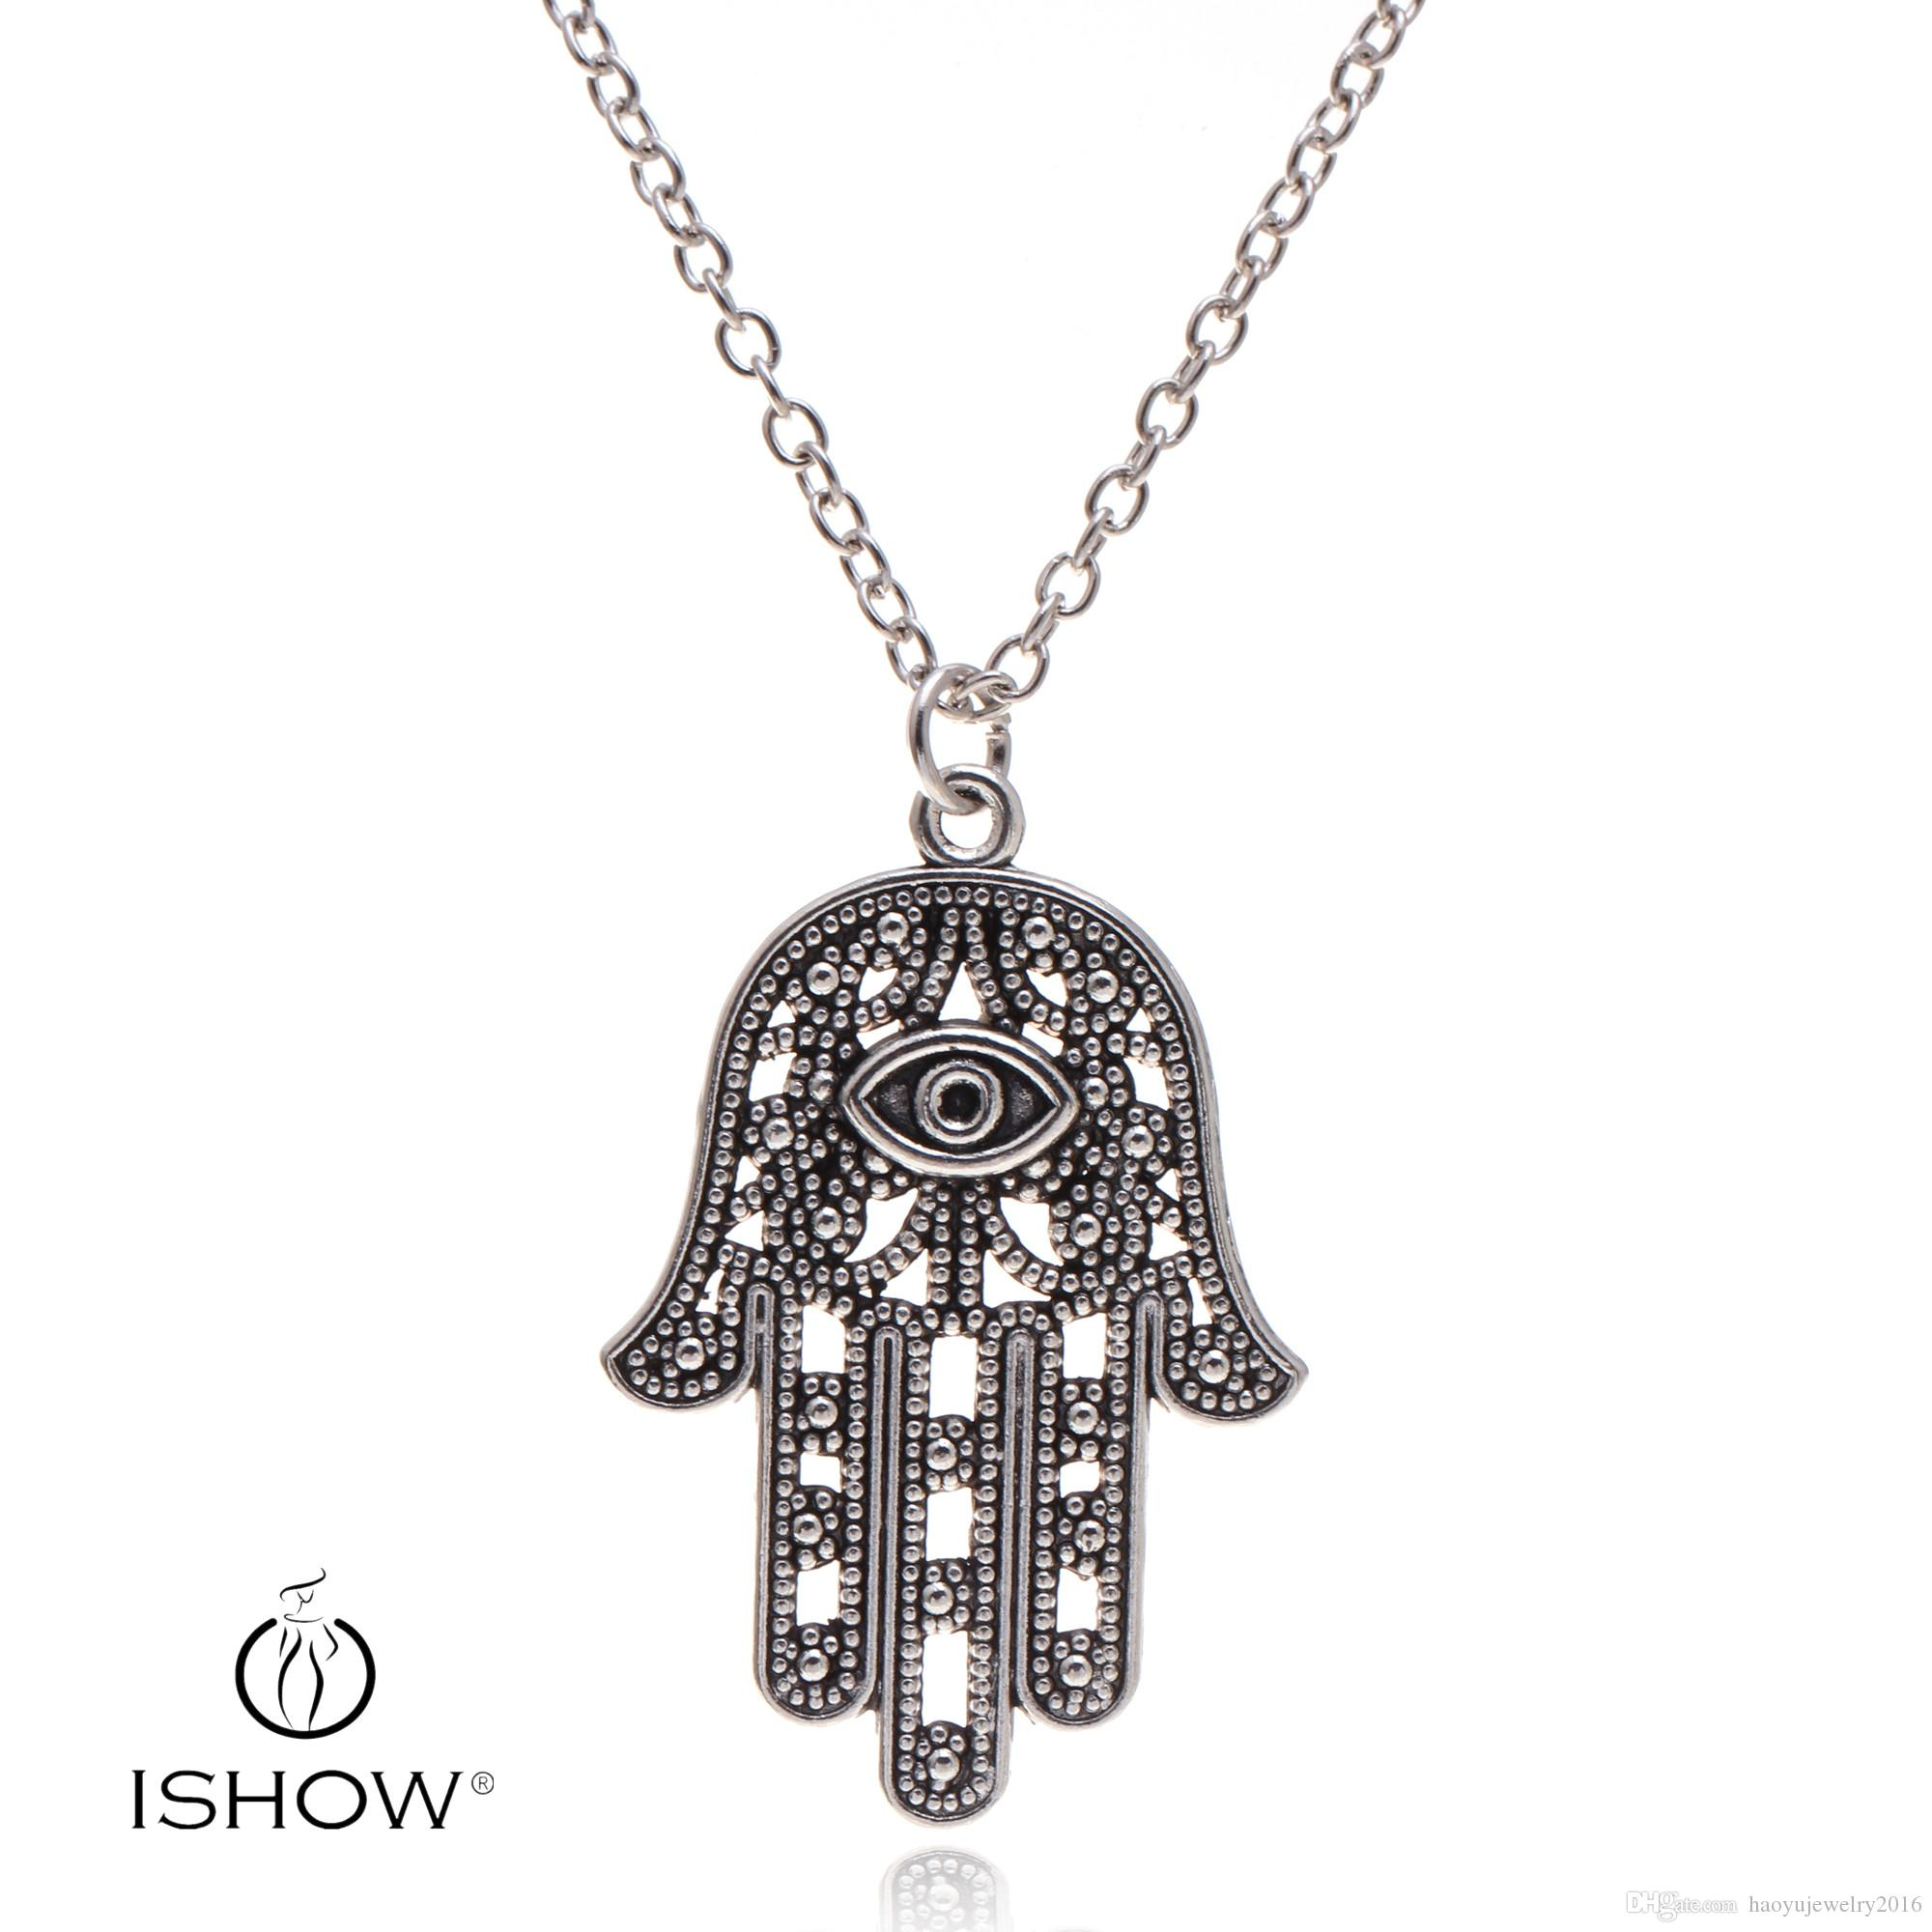 Wholesale Sliver Line Open Devil Eye Necklaces Hamsa Hand Evil Eye  Fortunate Turkish Eye Pendant Necklace HYNX2865 Butterfly Necklace Chain  Necklace From ... e233e61ea